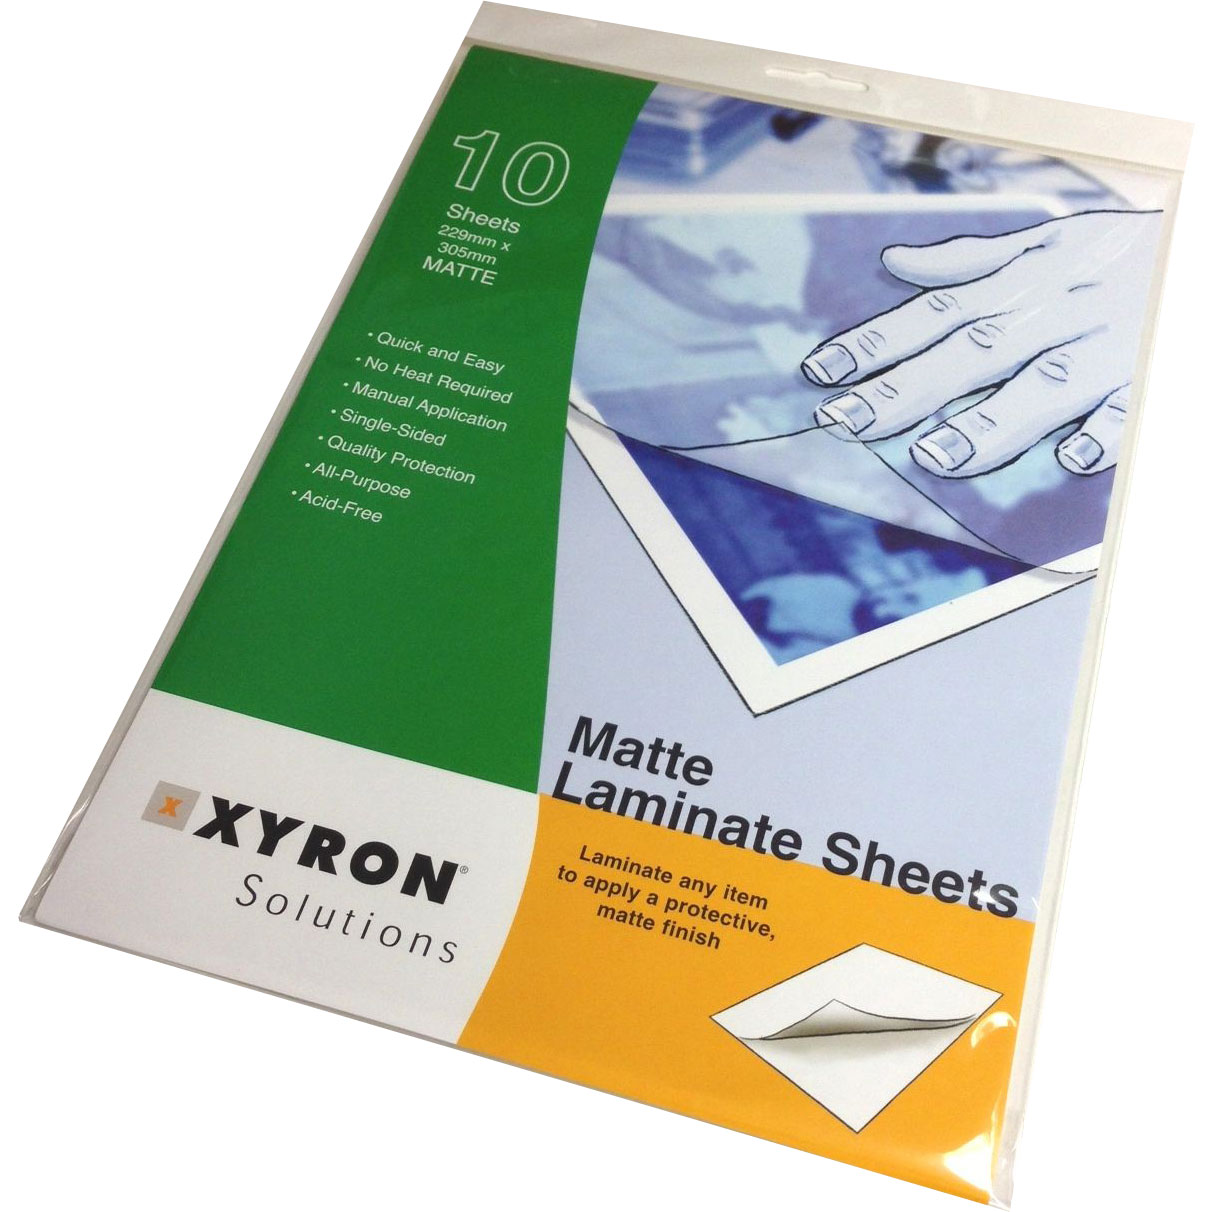 Xyron A4 Matt Laminate Sheets (100)